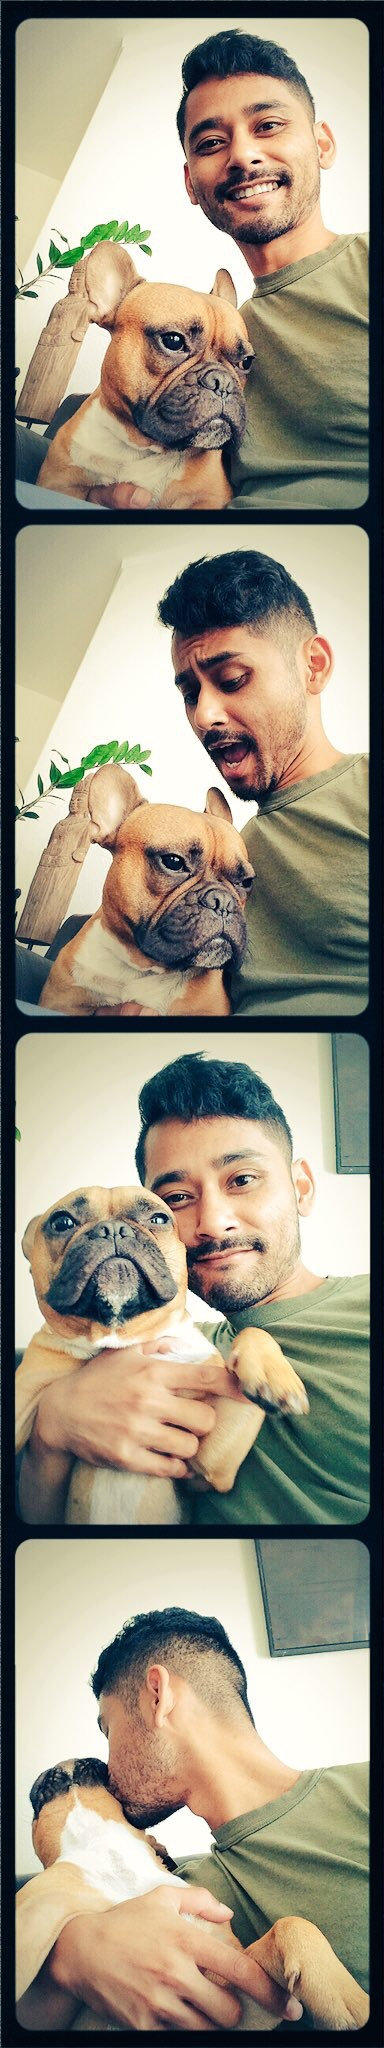 wanted picture - frenchbulldog - relax562 | ello